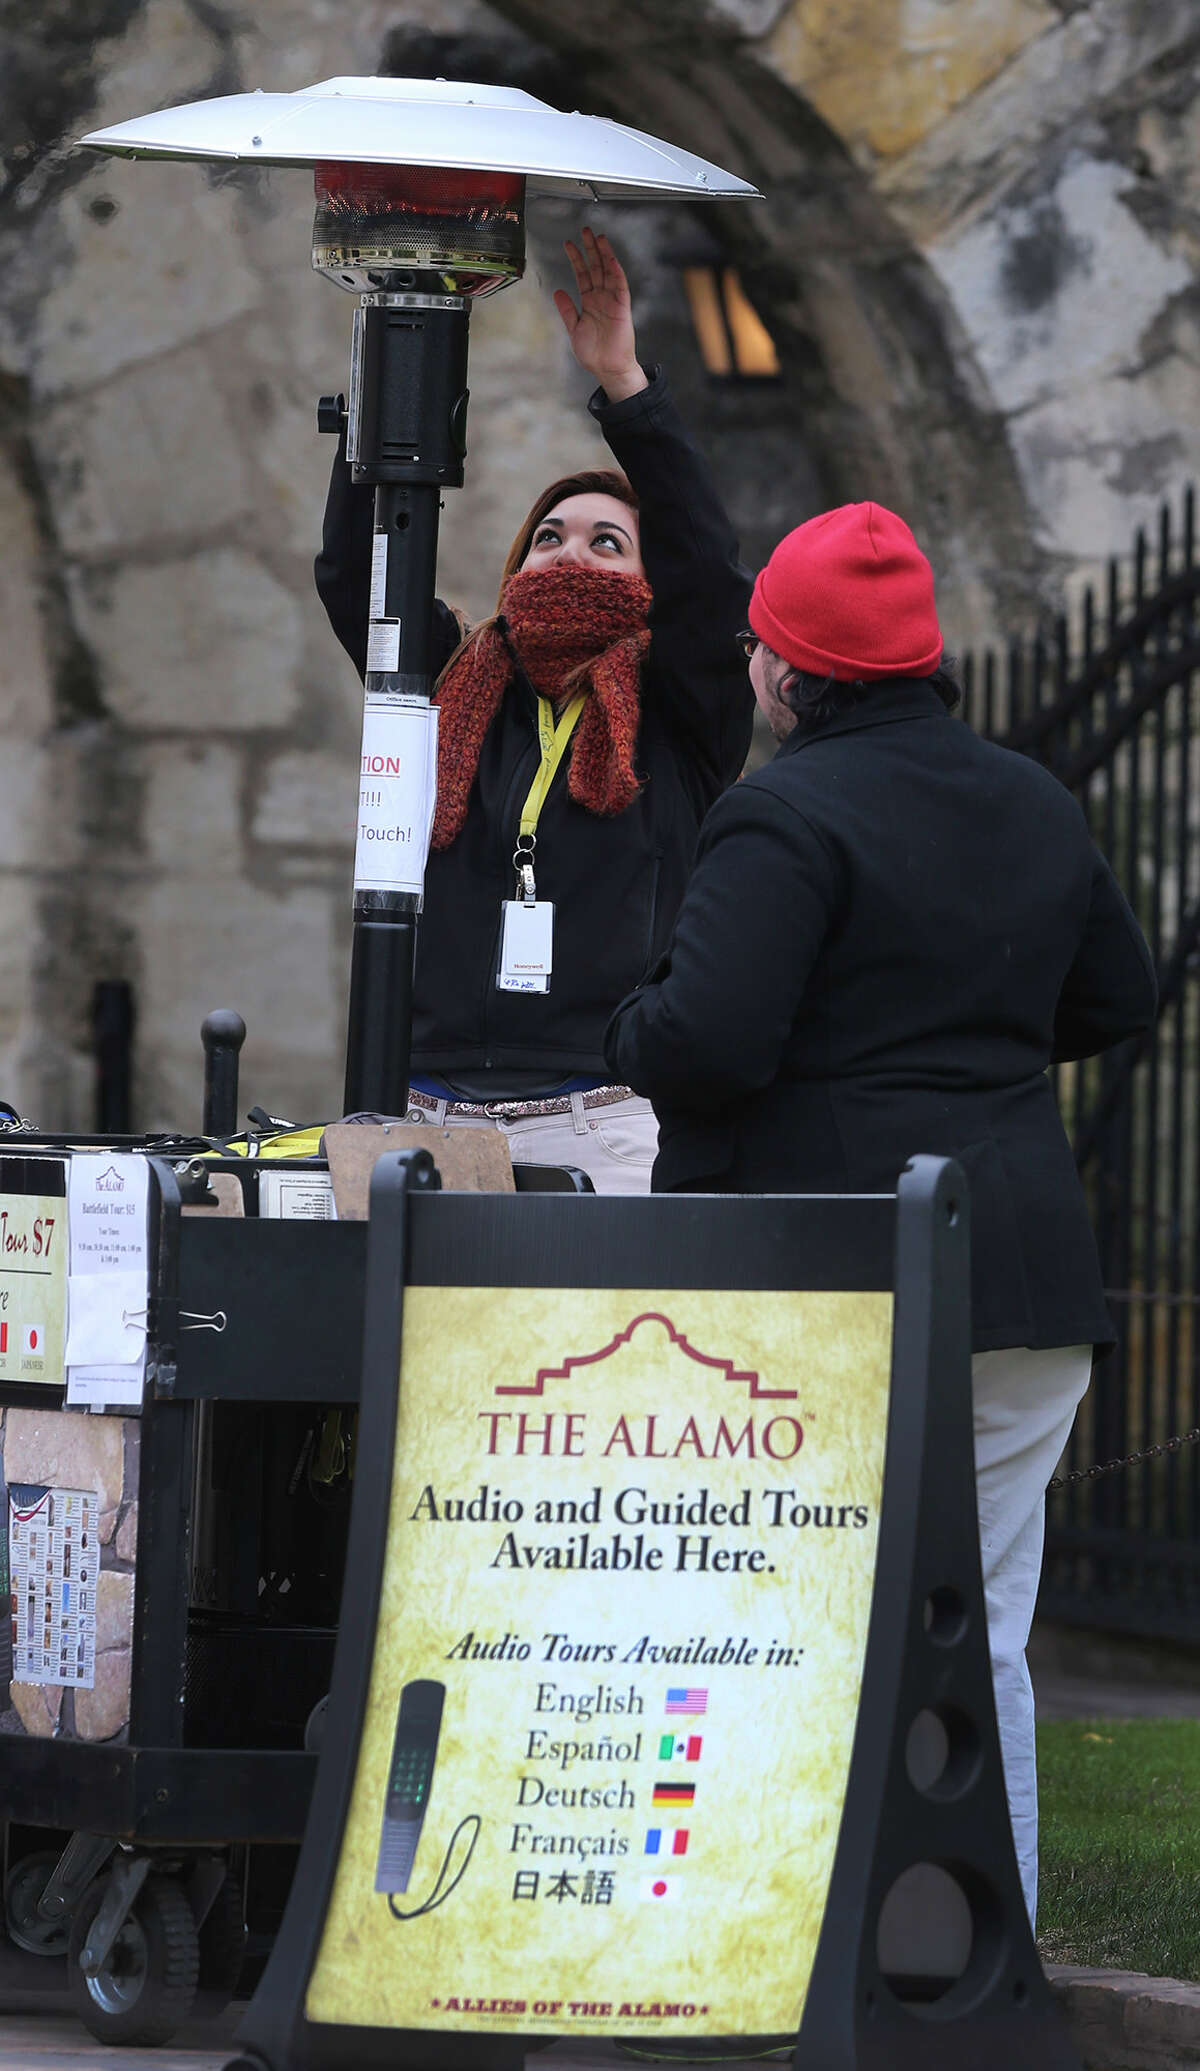 Idalis Salinas warms her hands under a portable heater in front of the Alamo.